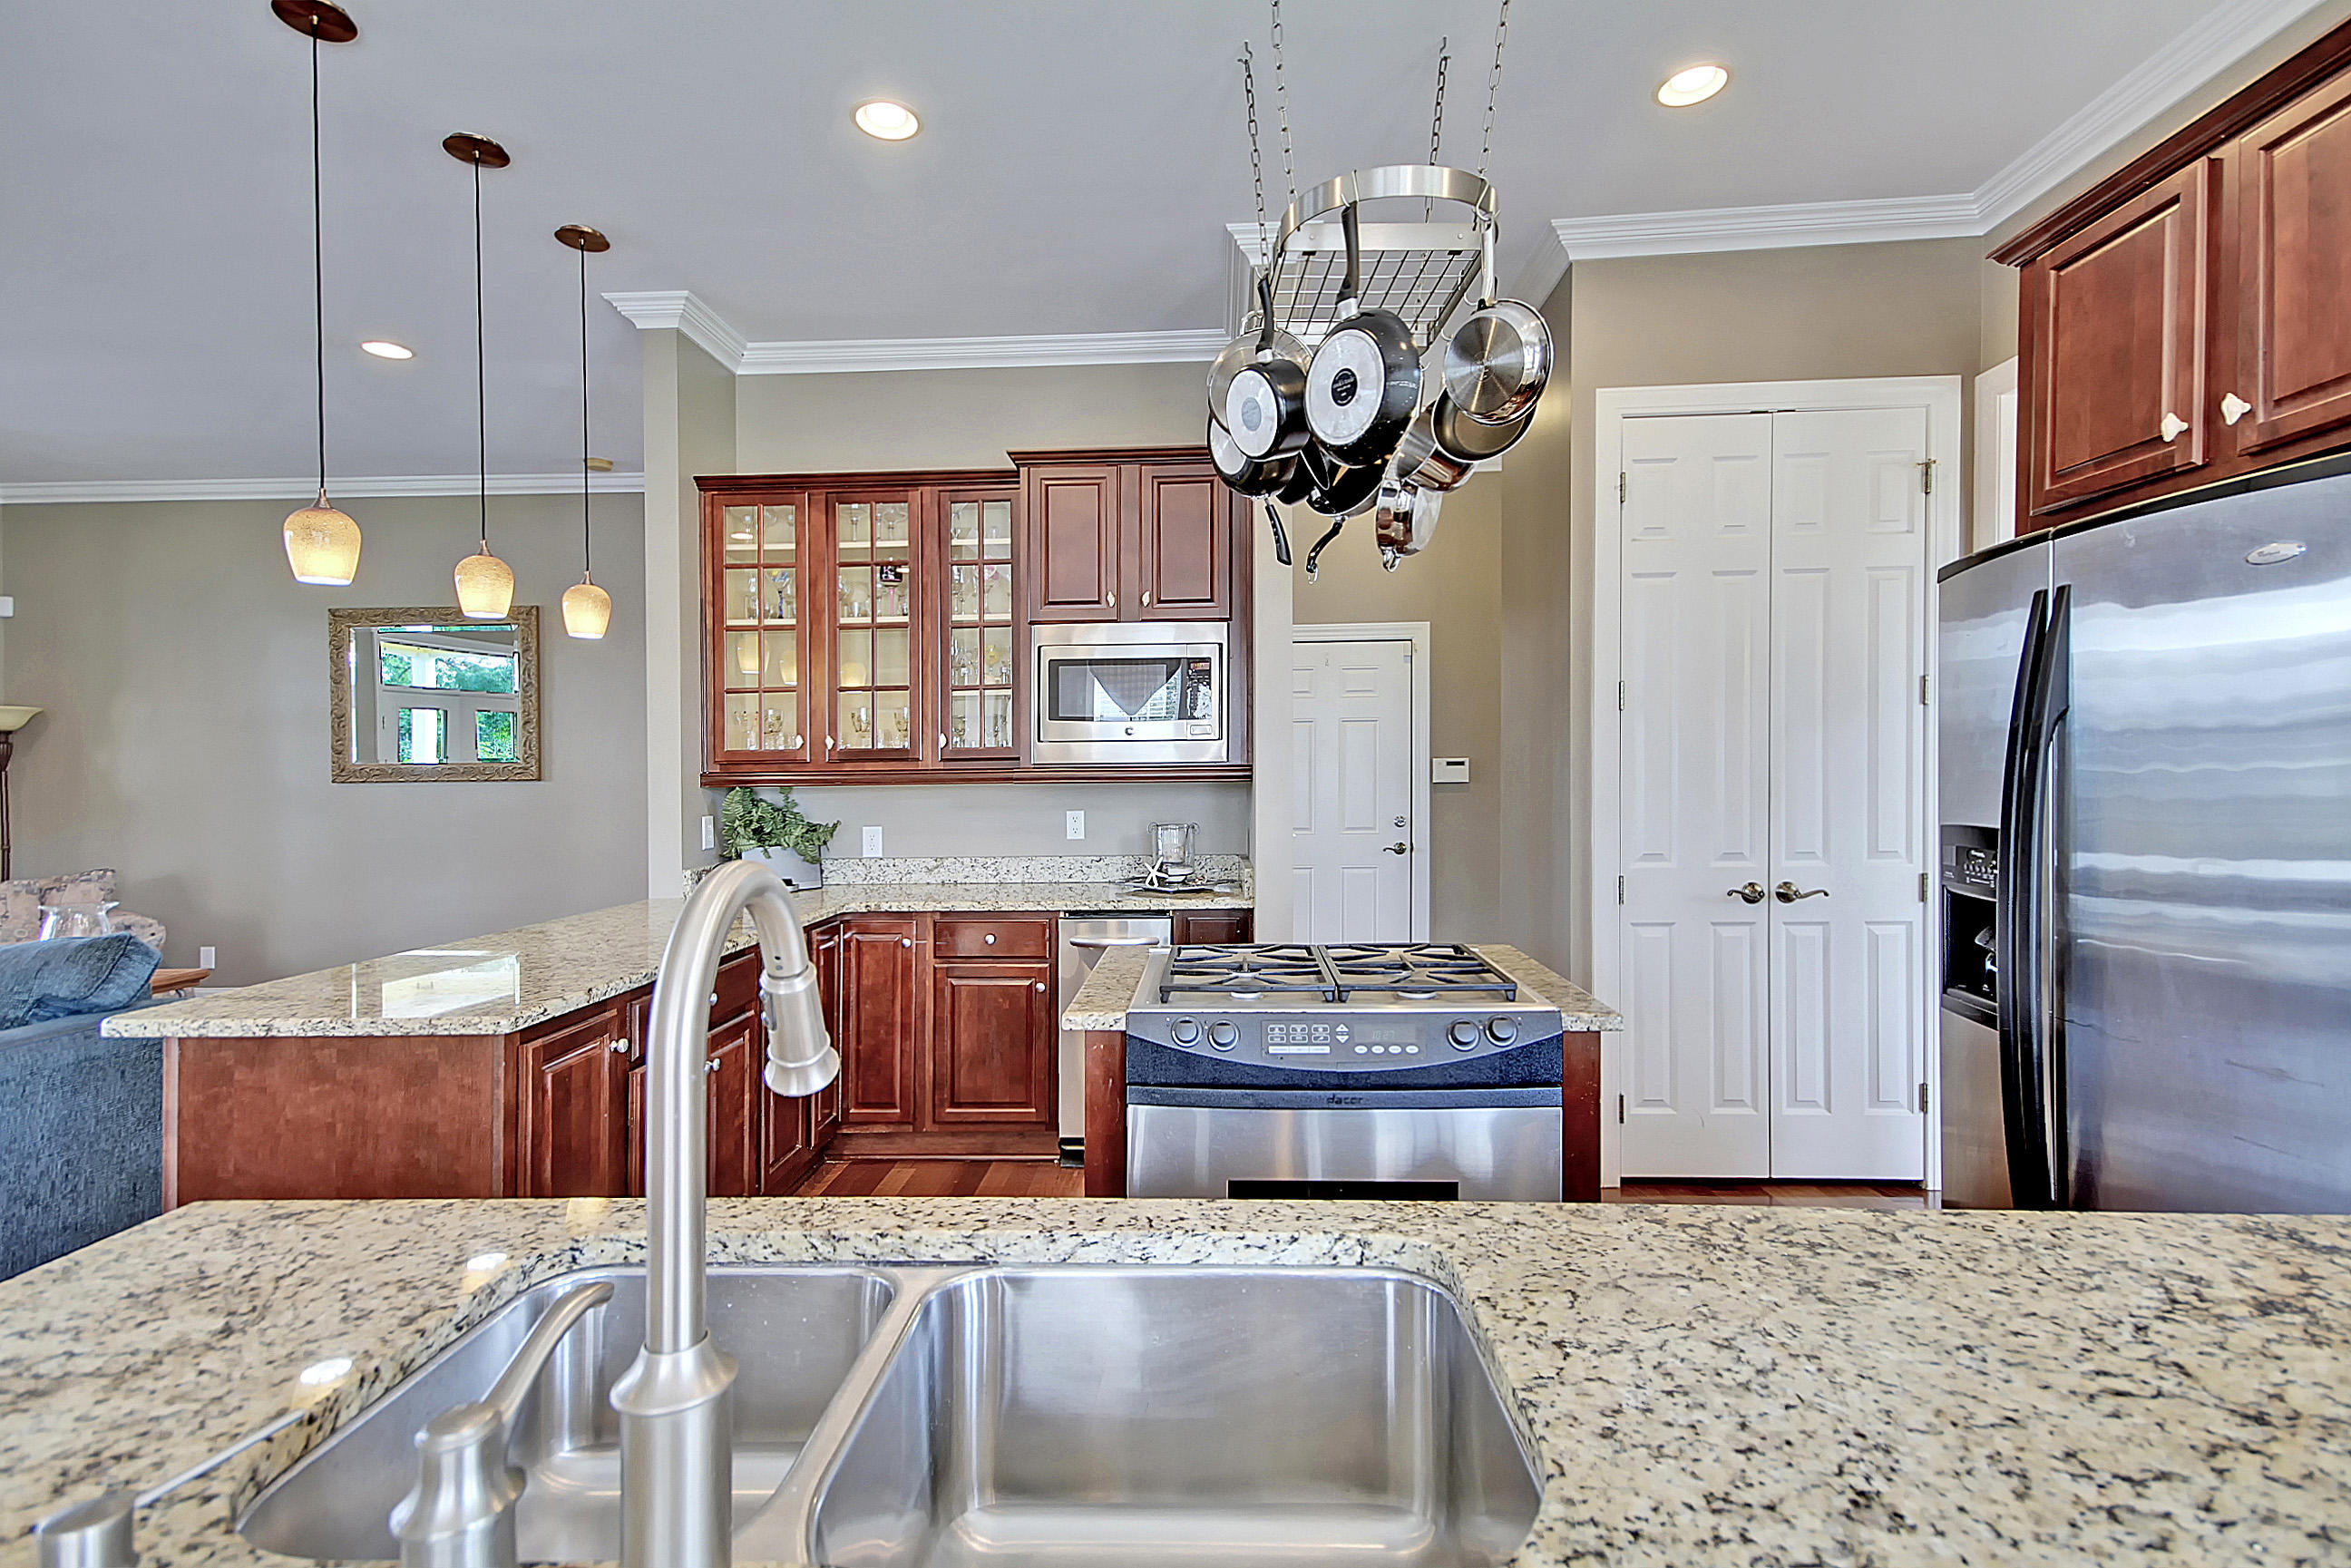 Rivertowne Country Club Homes For Sale - 1536 Rivertowne Country Club, Mount Pleasant, SC - 10